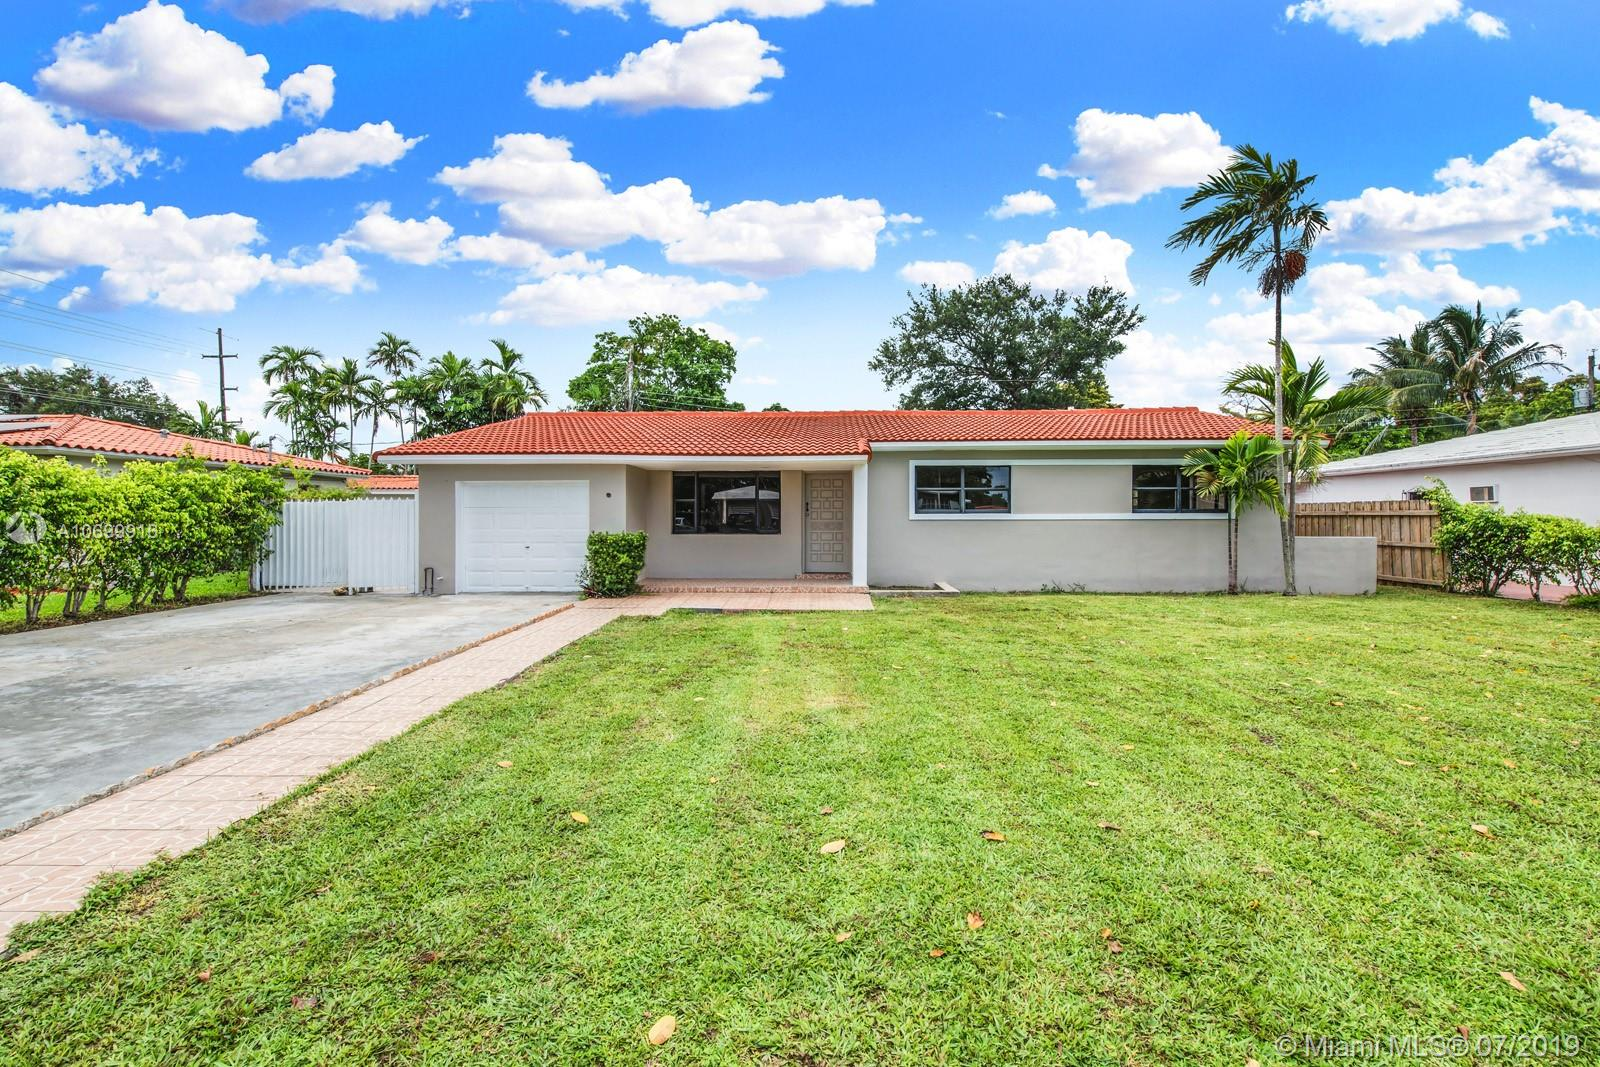 One of Miami Shores 3 Bedroom Homes for Sale at 475 NW 88th St